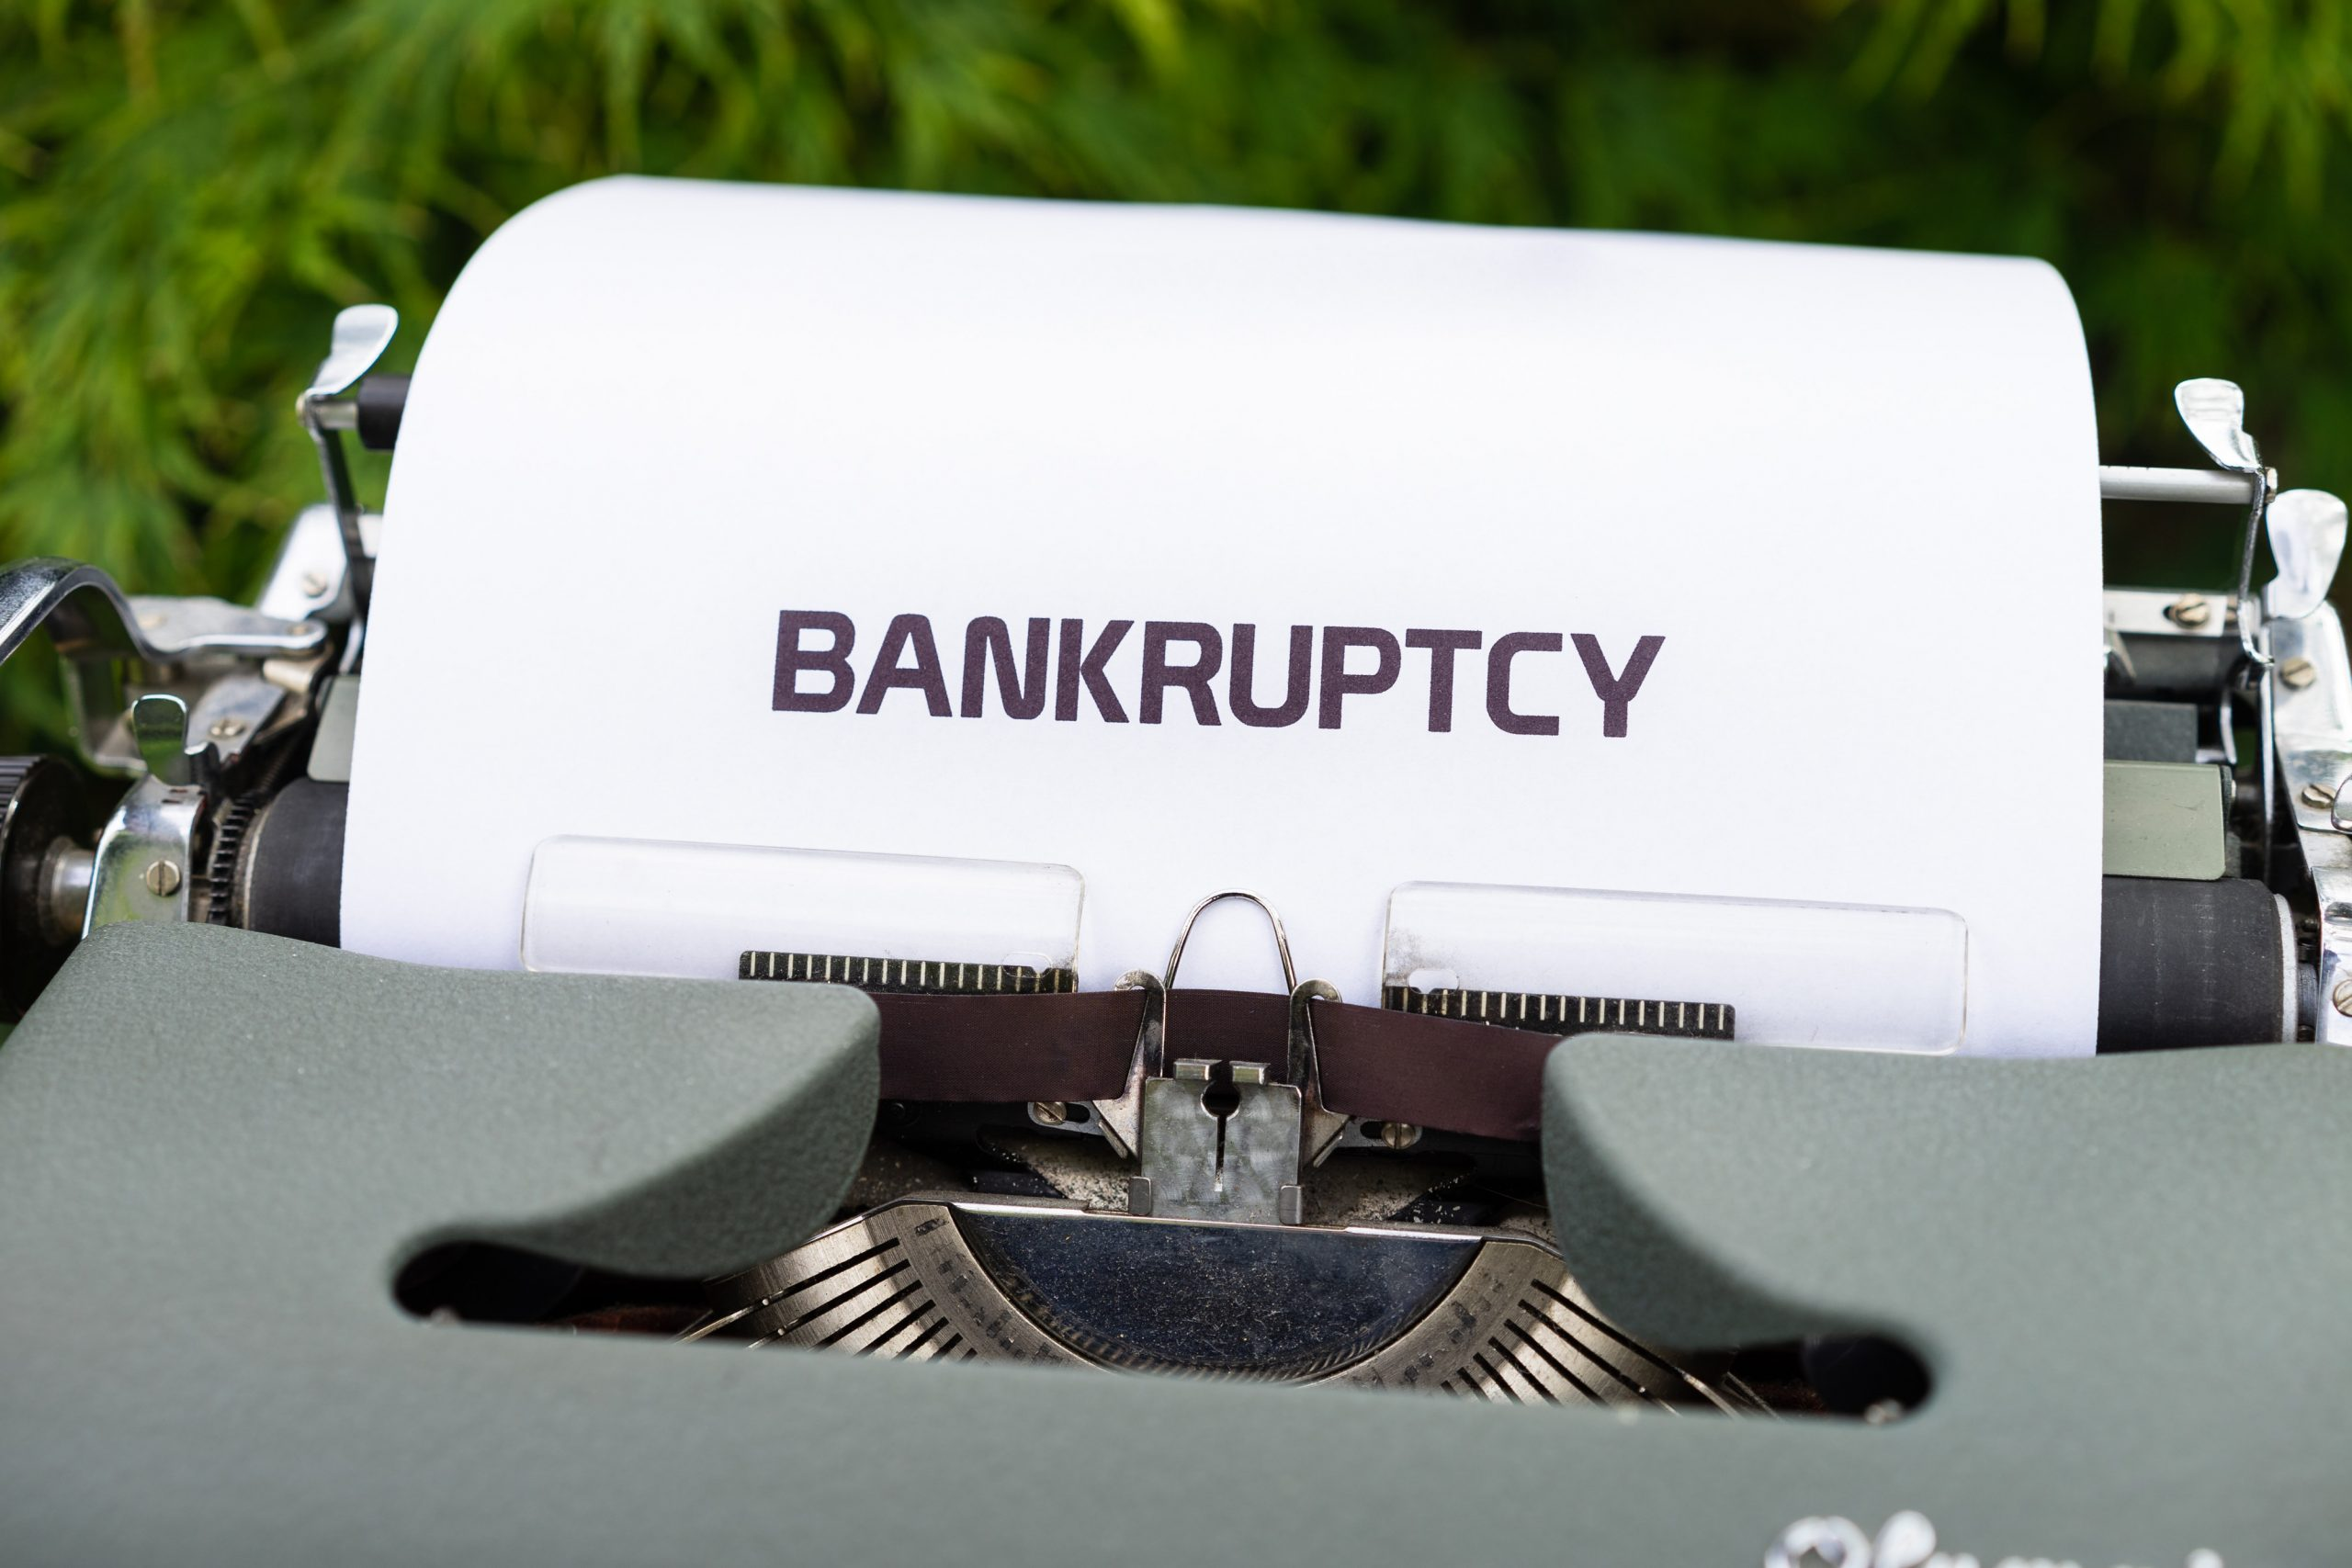 Prepare to file Chapter 7 bankruptcy in Michigan